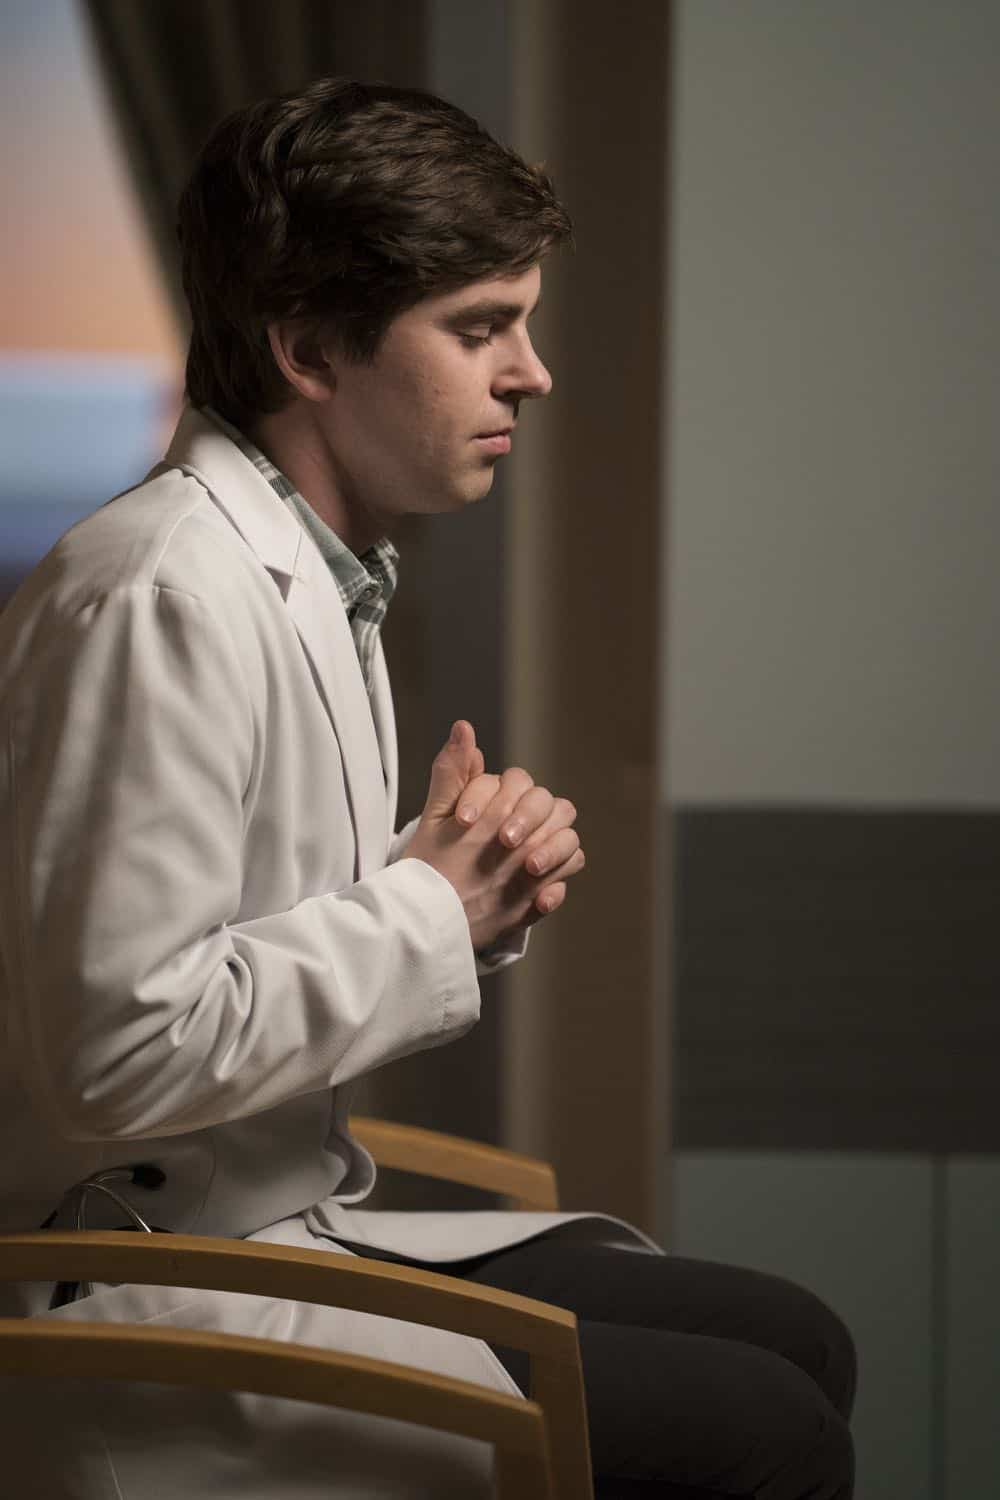 THE GOOD DOCTOR Season 2 Episode 2 Middle Ground 02